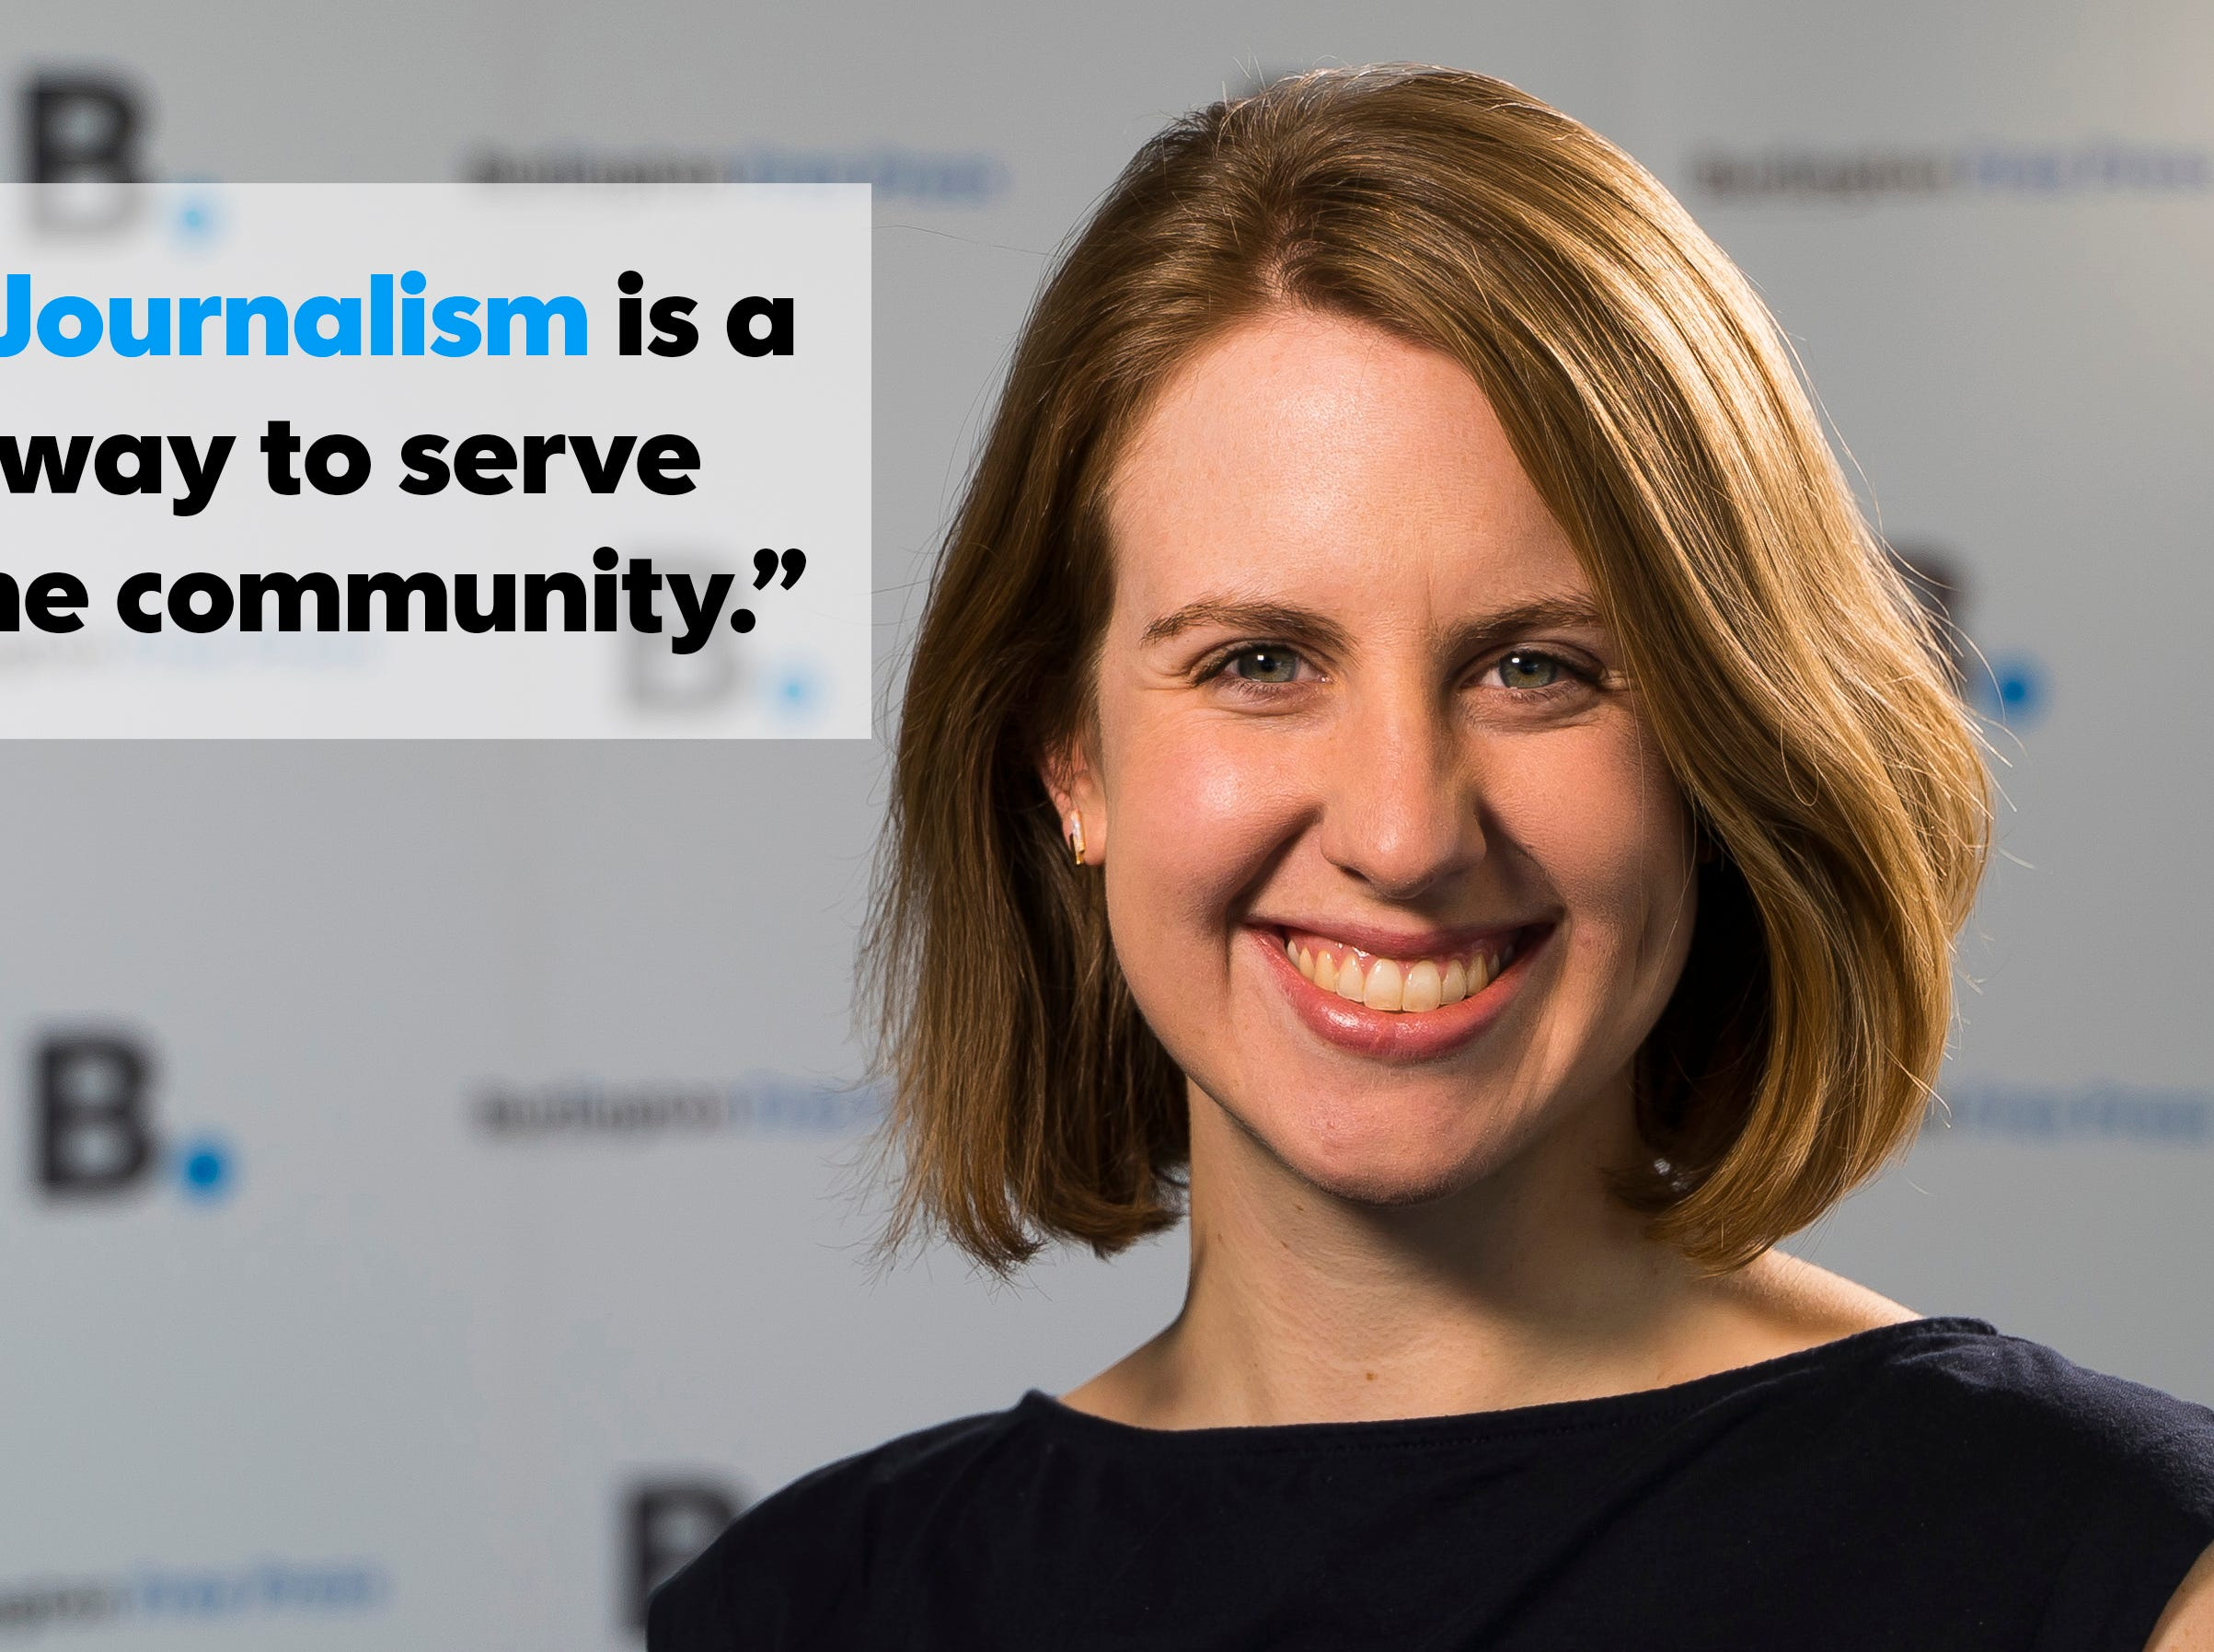 April McCullum started working at the Free Press in 2013 and has worked to provide Vermonters with comprehensive coverage of how statewide policies affect their daily lives. She enjoys digging into complex issues and strives to help make politics accessible for everyone.